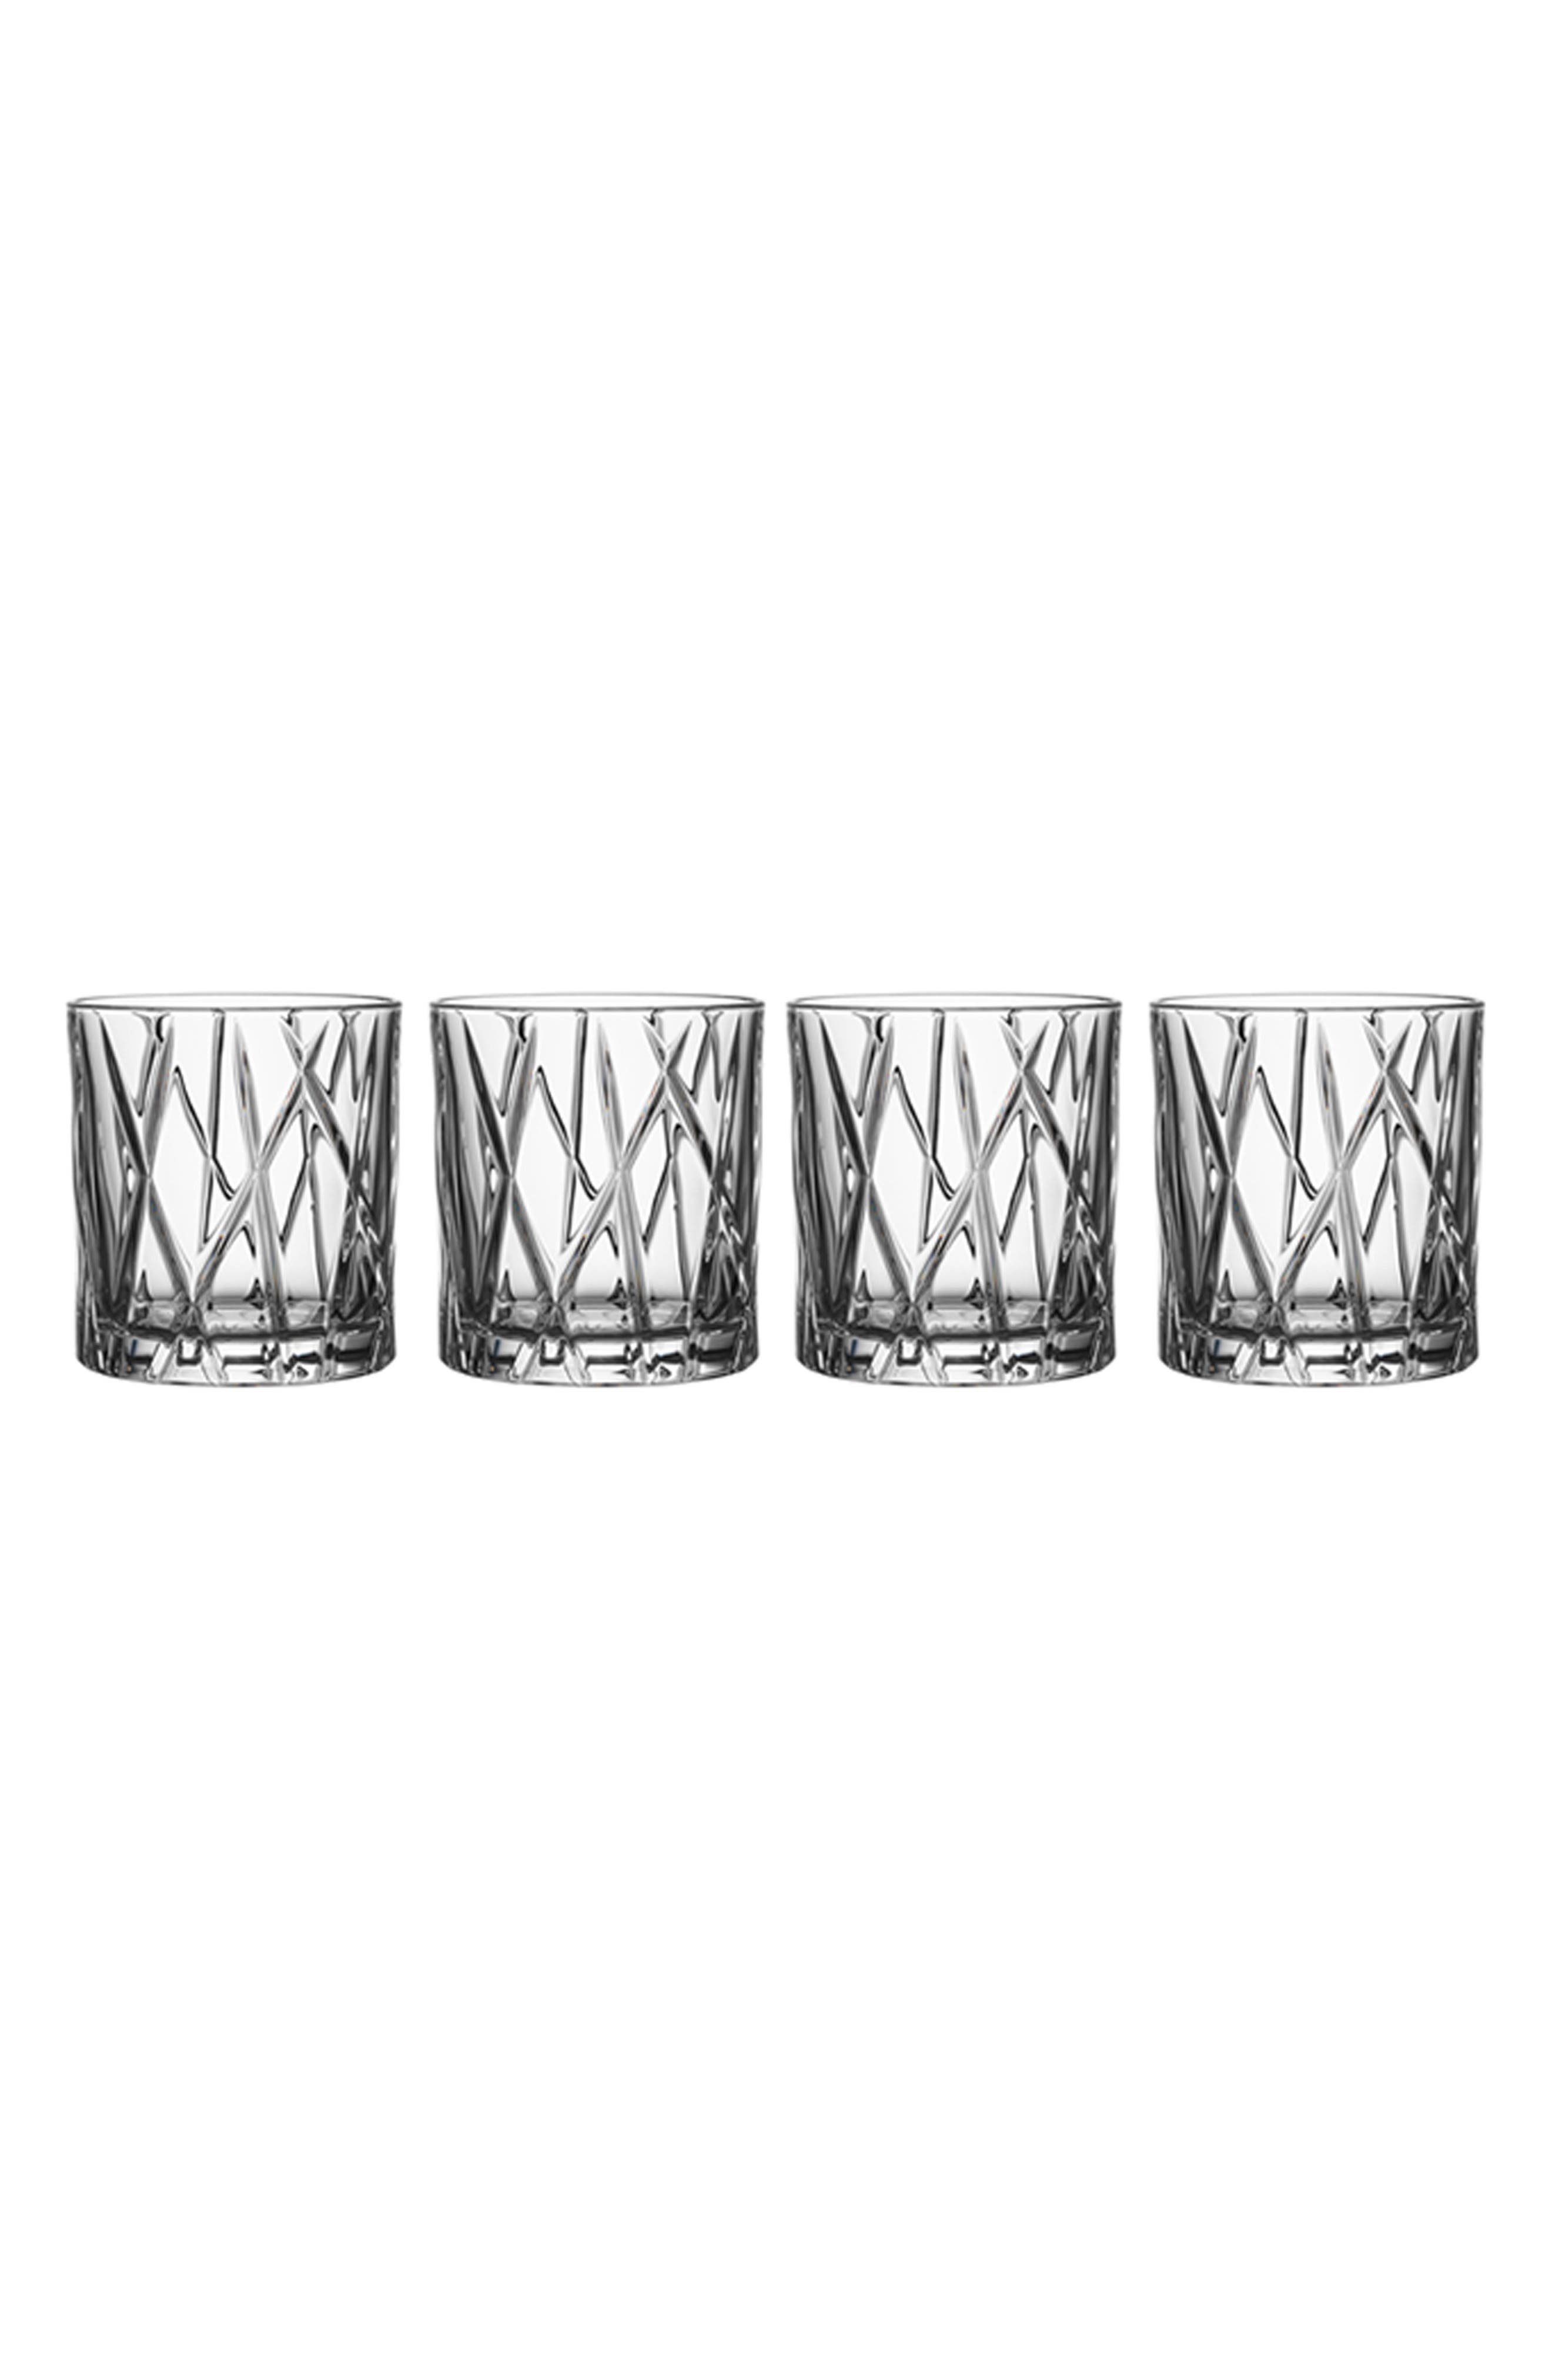 City Set of 4 Crystal Old Fashioned Glasses,                             Main thumbnail 1, color,                             100